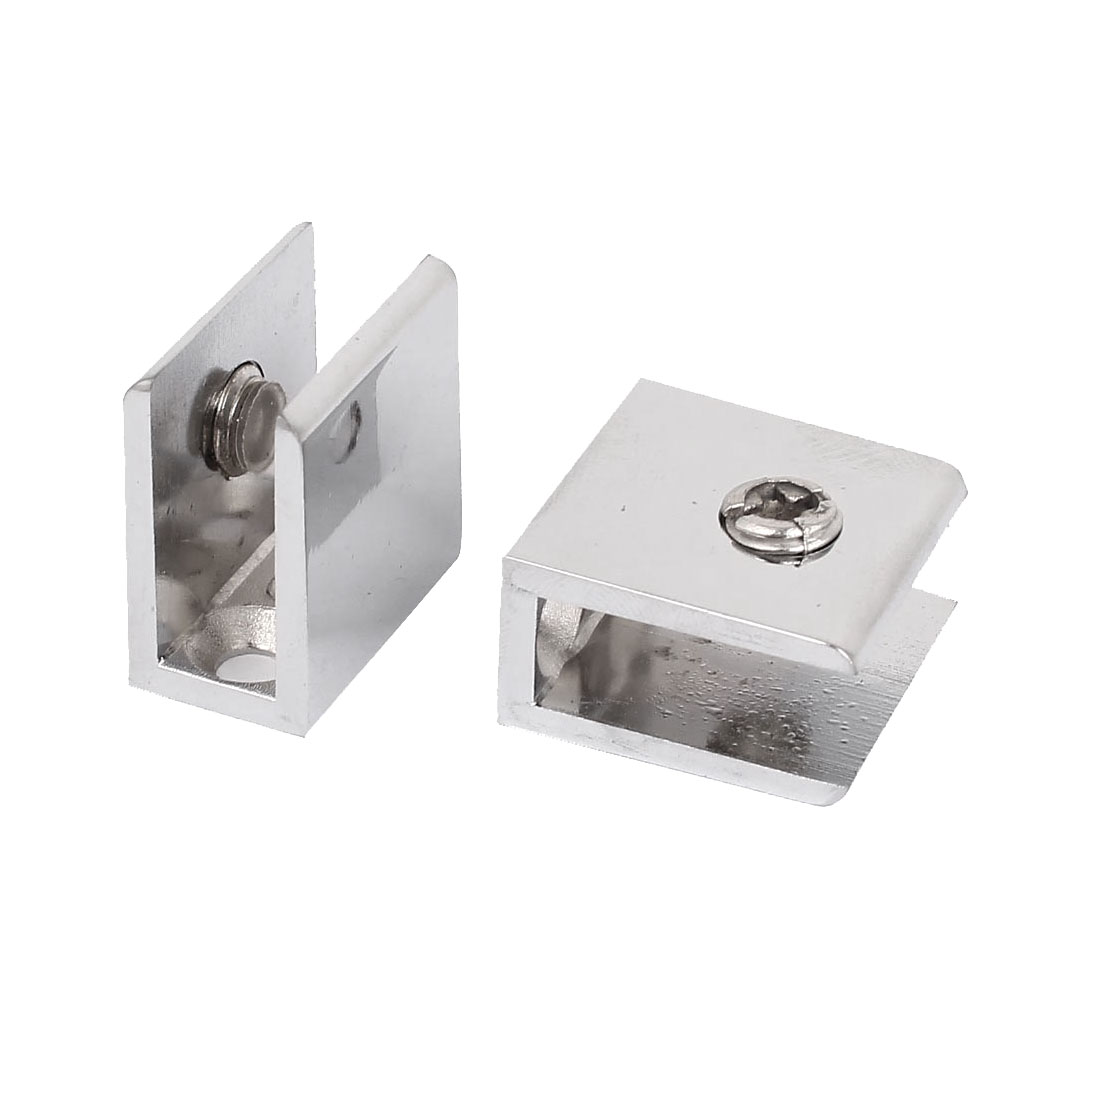 2Pcs Adjustable Screw Rectangle Clip Clamp Support for 10mm Thickness Glass